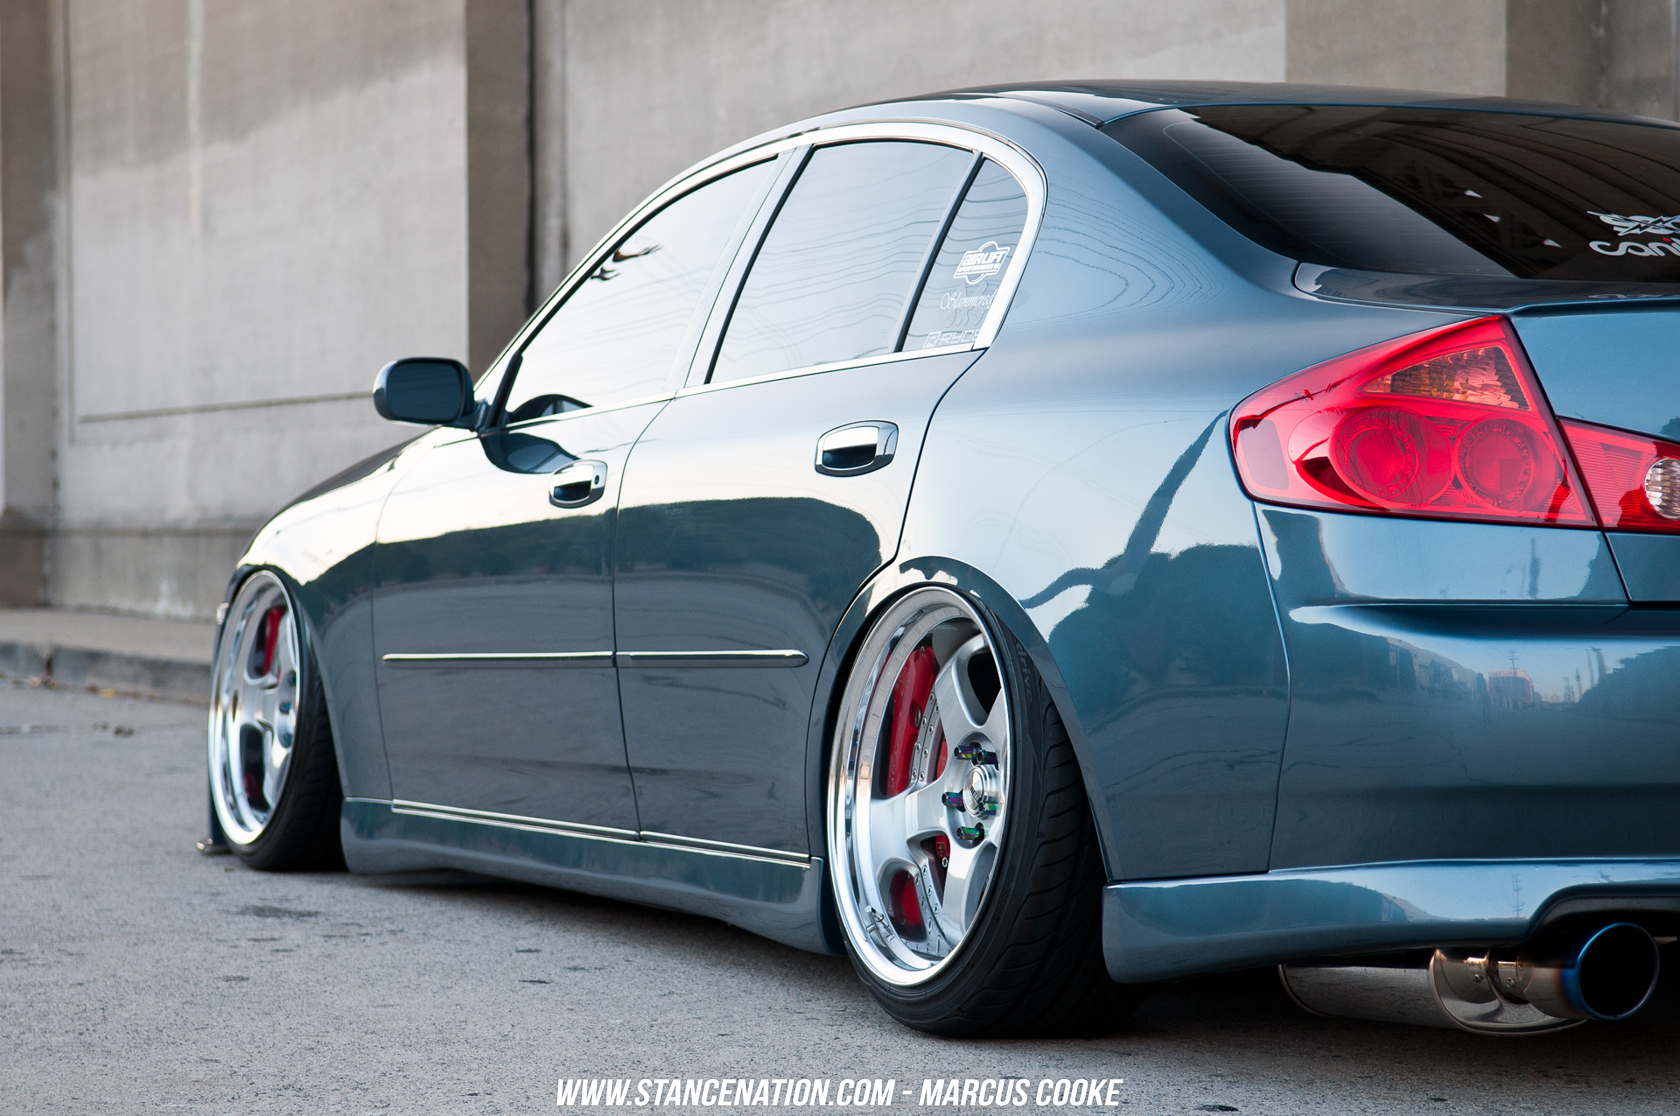 99 ideas 2014 infiniti g35 on stylecars the act of being humble marcus cookes g35 sedan vanachro Choice Image